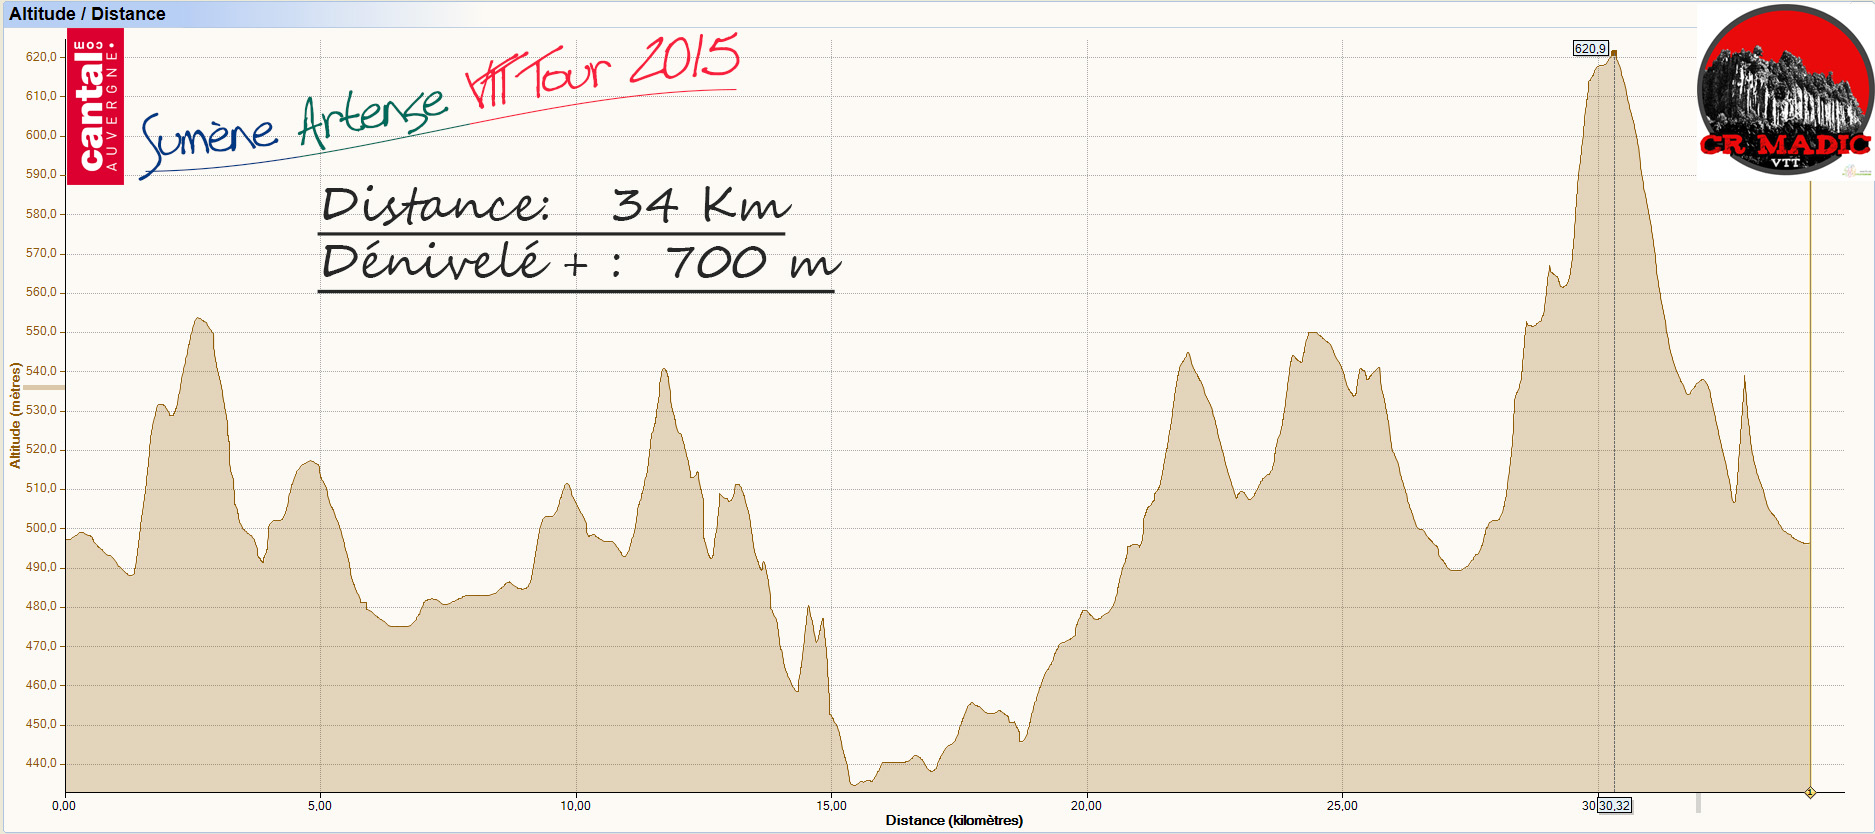 2015 savtt tour 34 km denivele 1